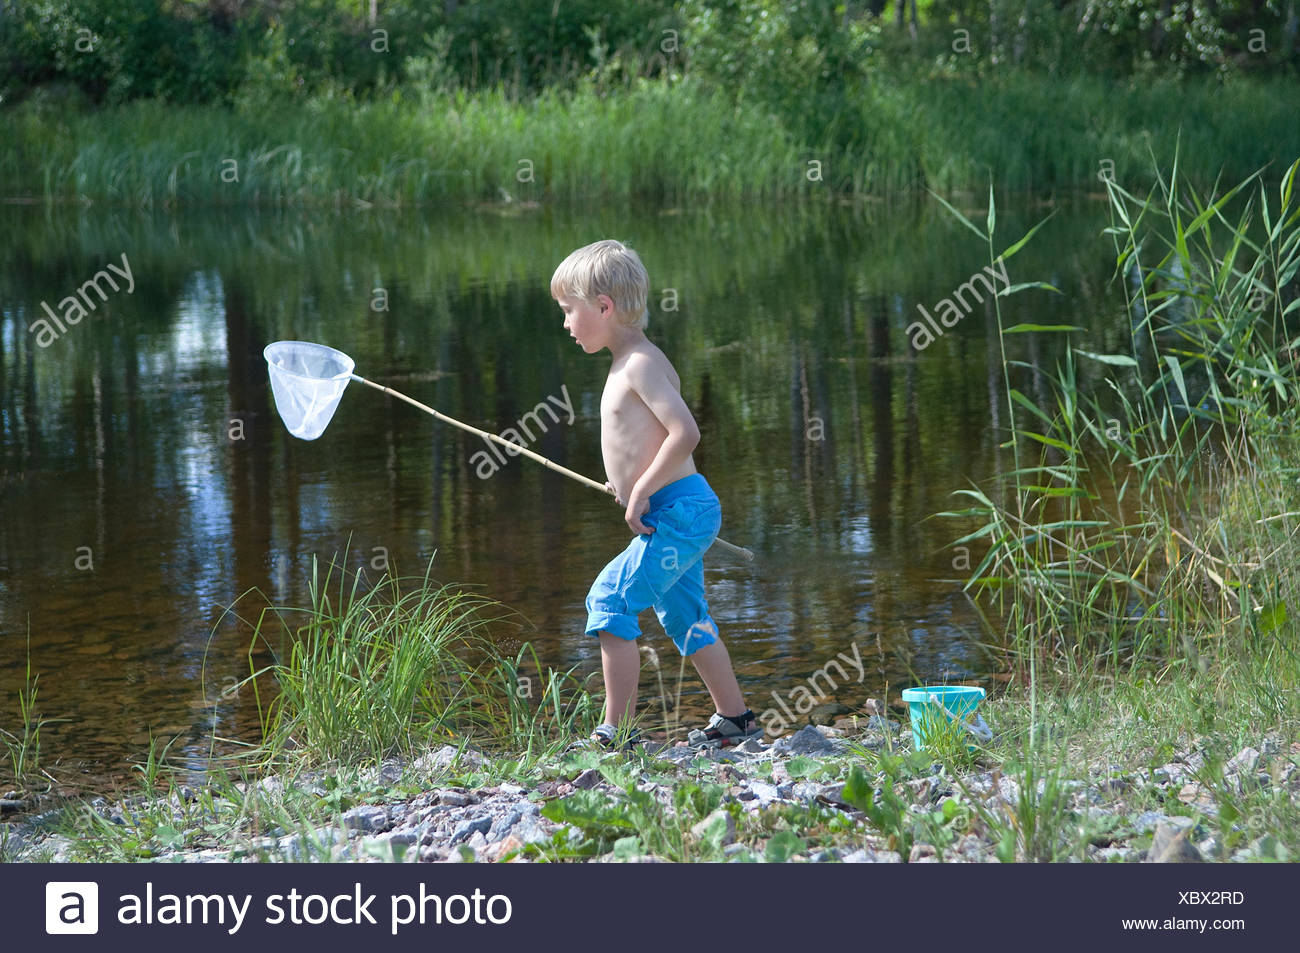 A boy playing with a butterfly-net, Sweden. - Stock Image